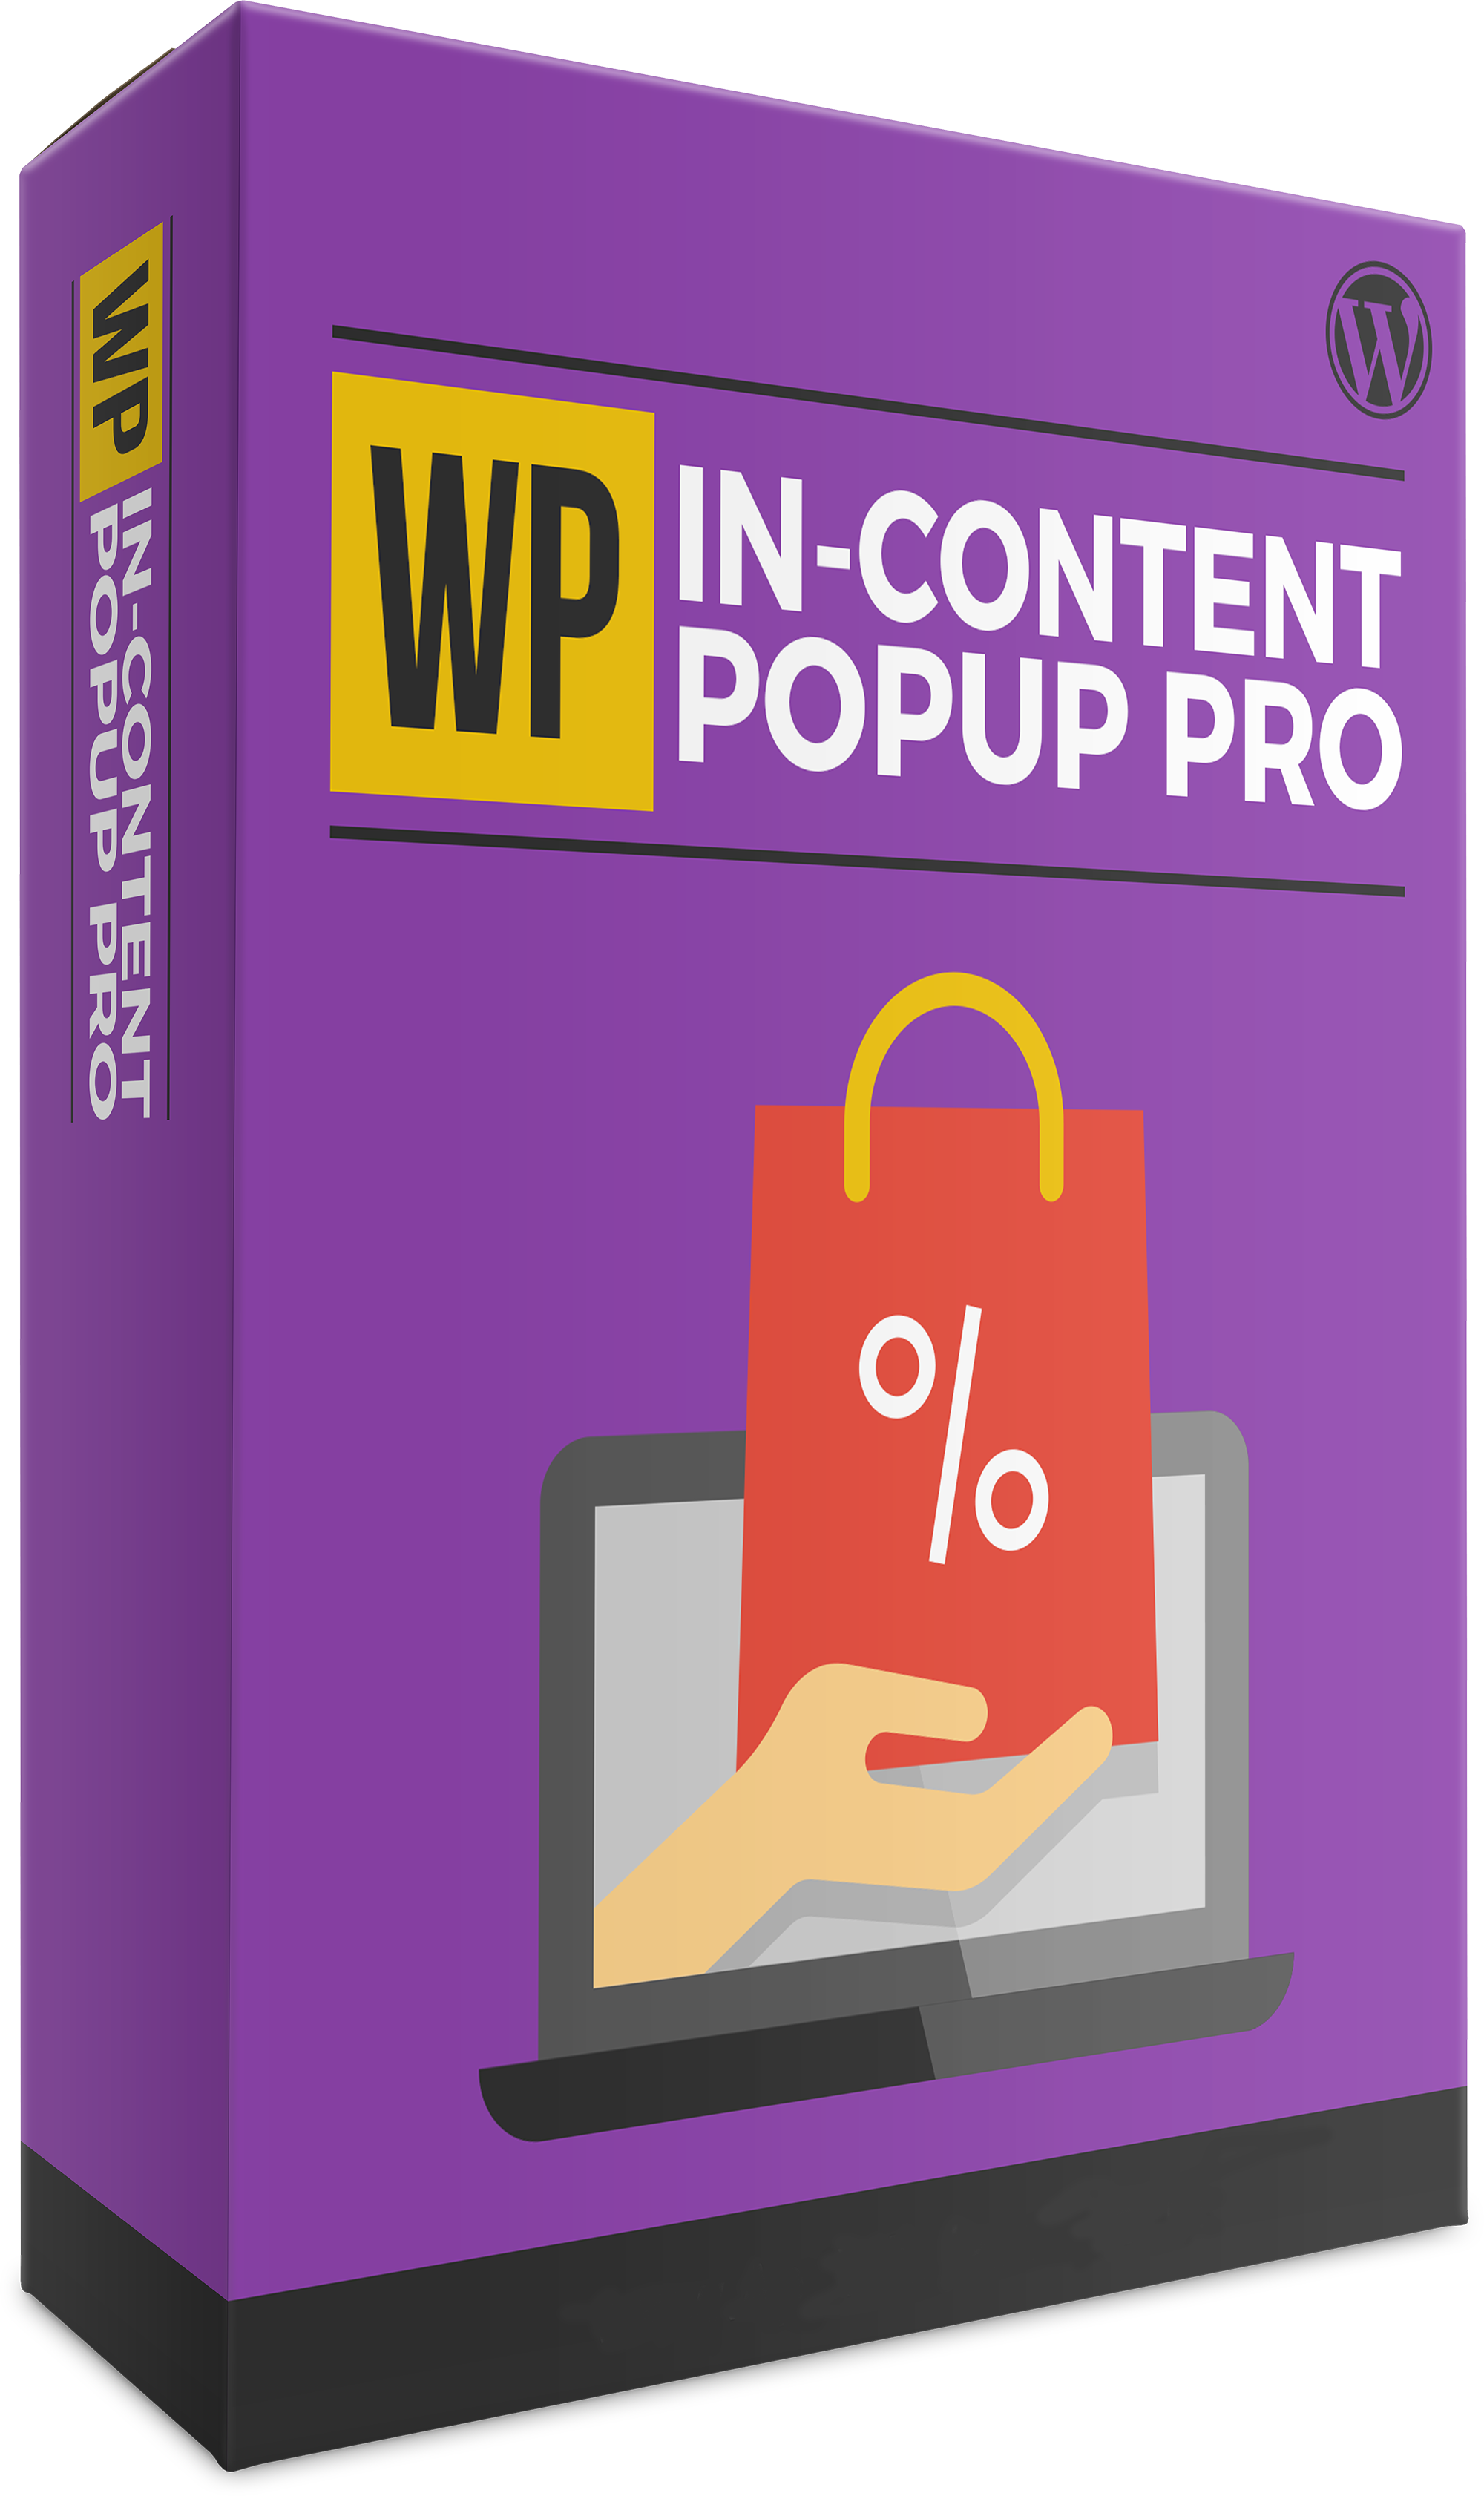 WP In-Content Popup Pro is a new plugin that lets you create attention grabbing popups within your c